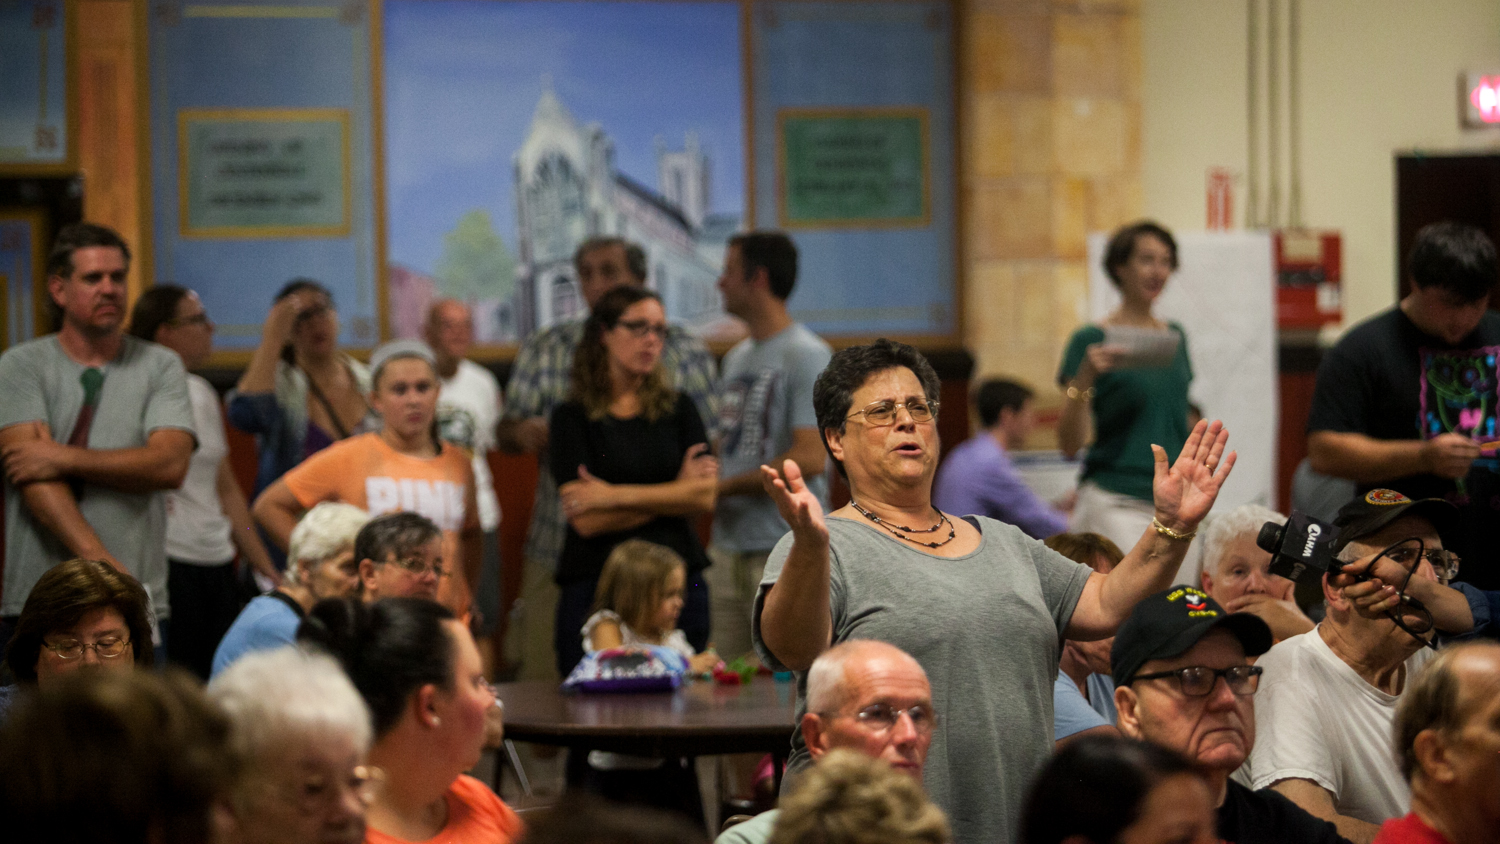 Fishtown residents debate a development project at a neighborhood zoning meeting.